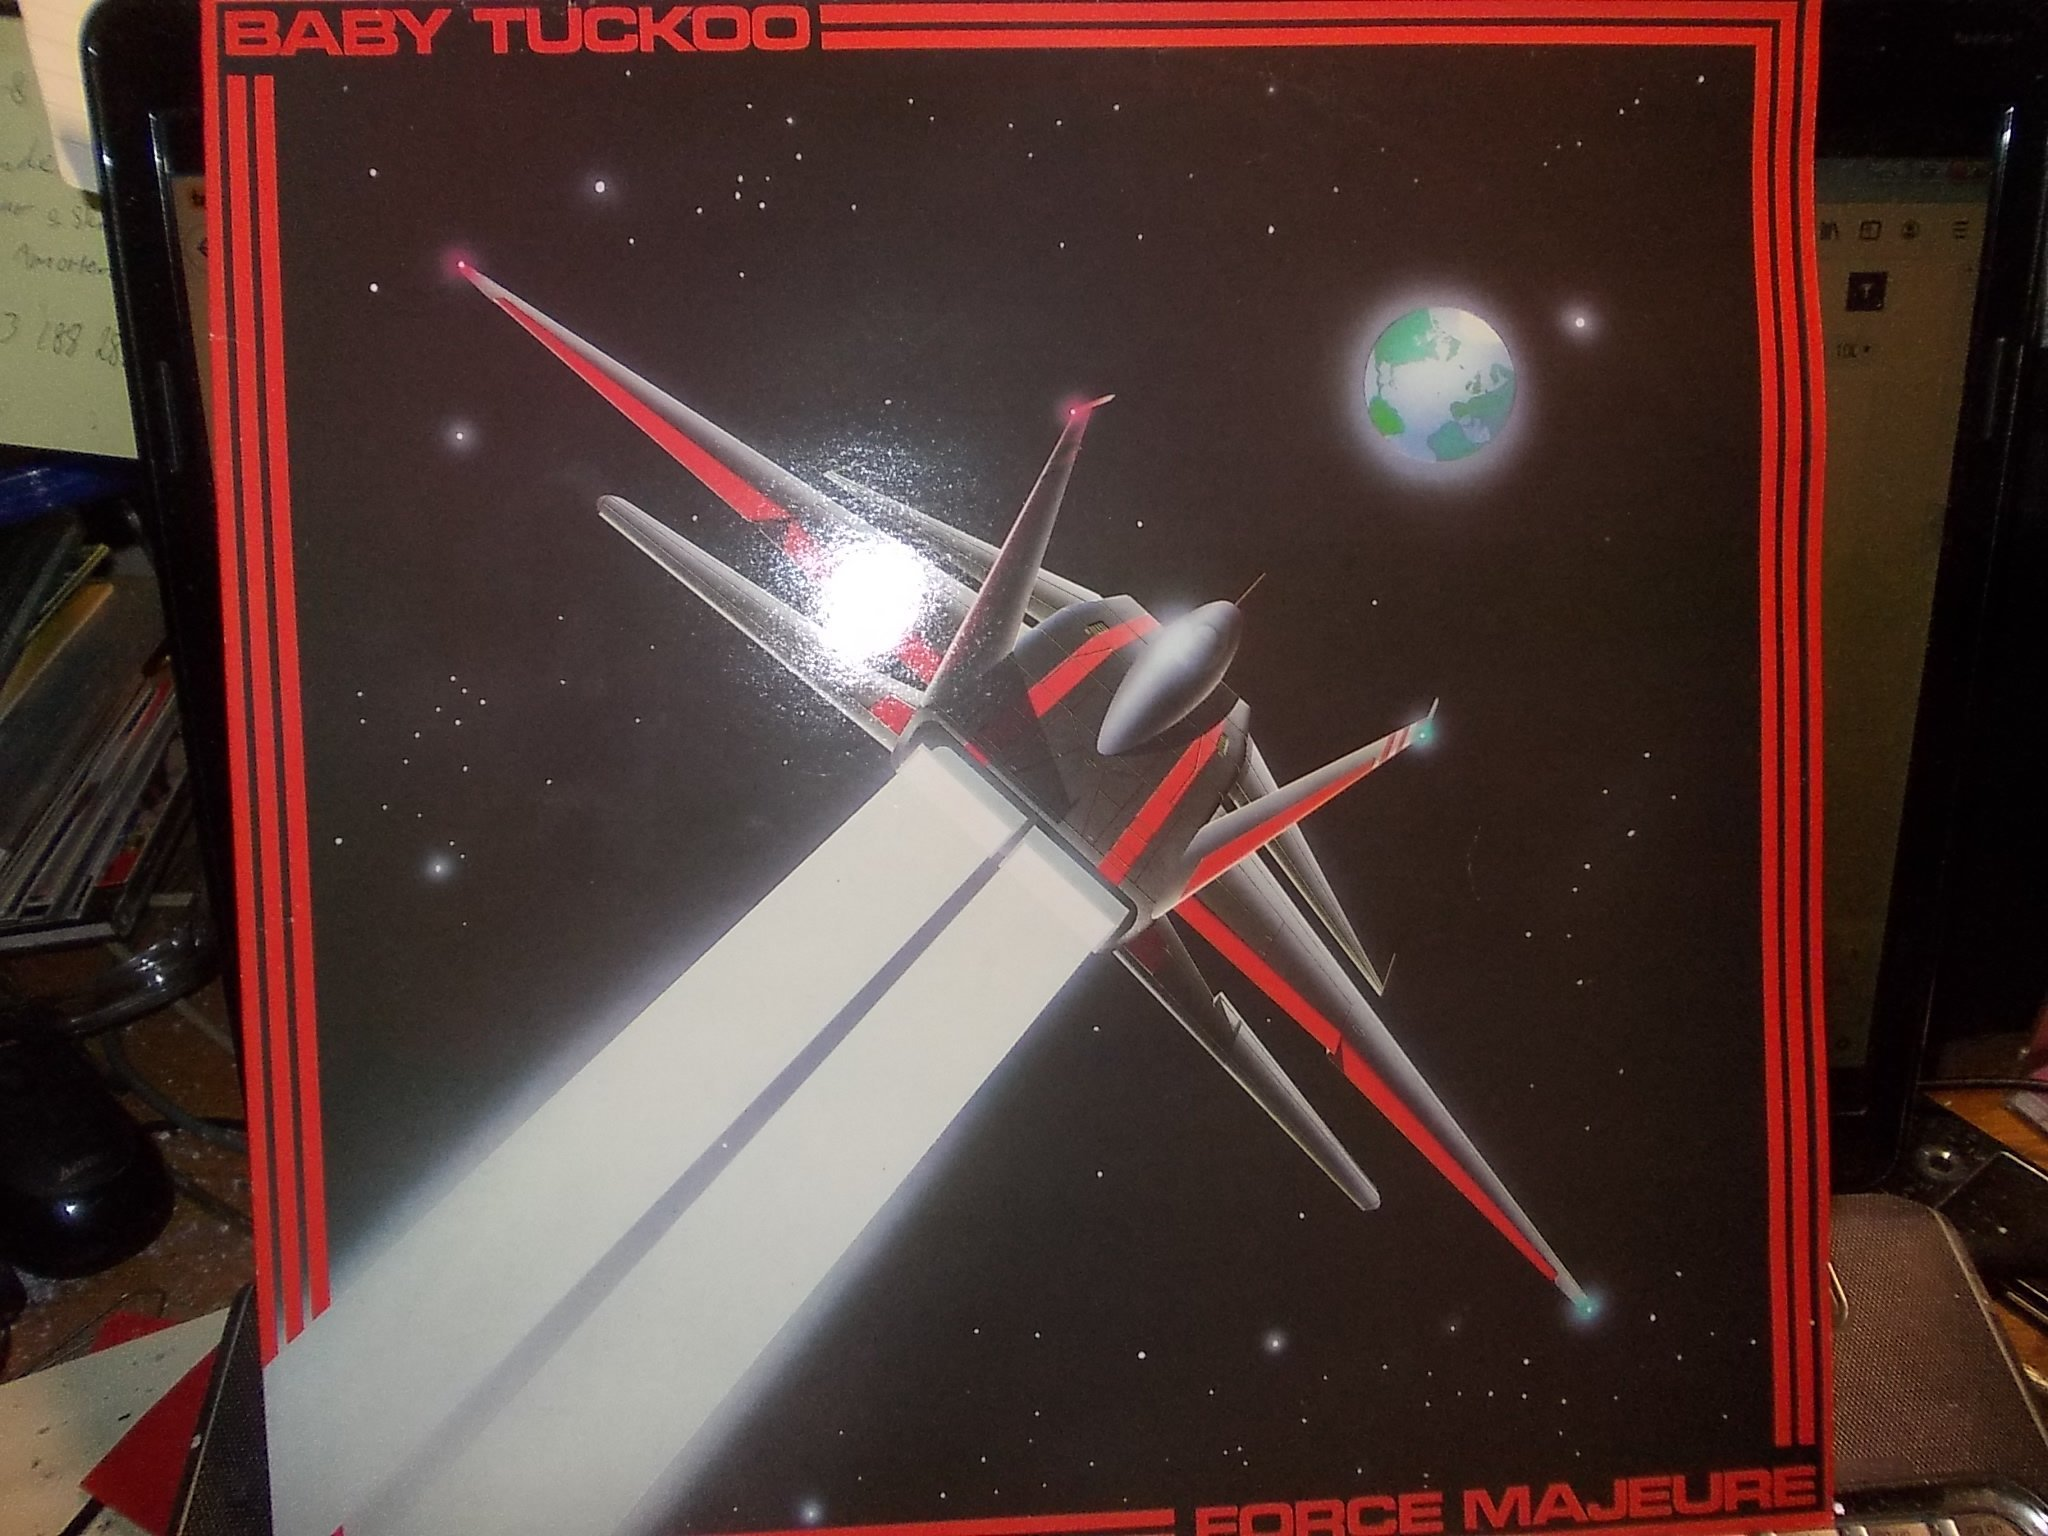 Baby Tuckoo-Force majeure